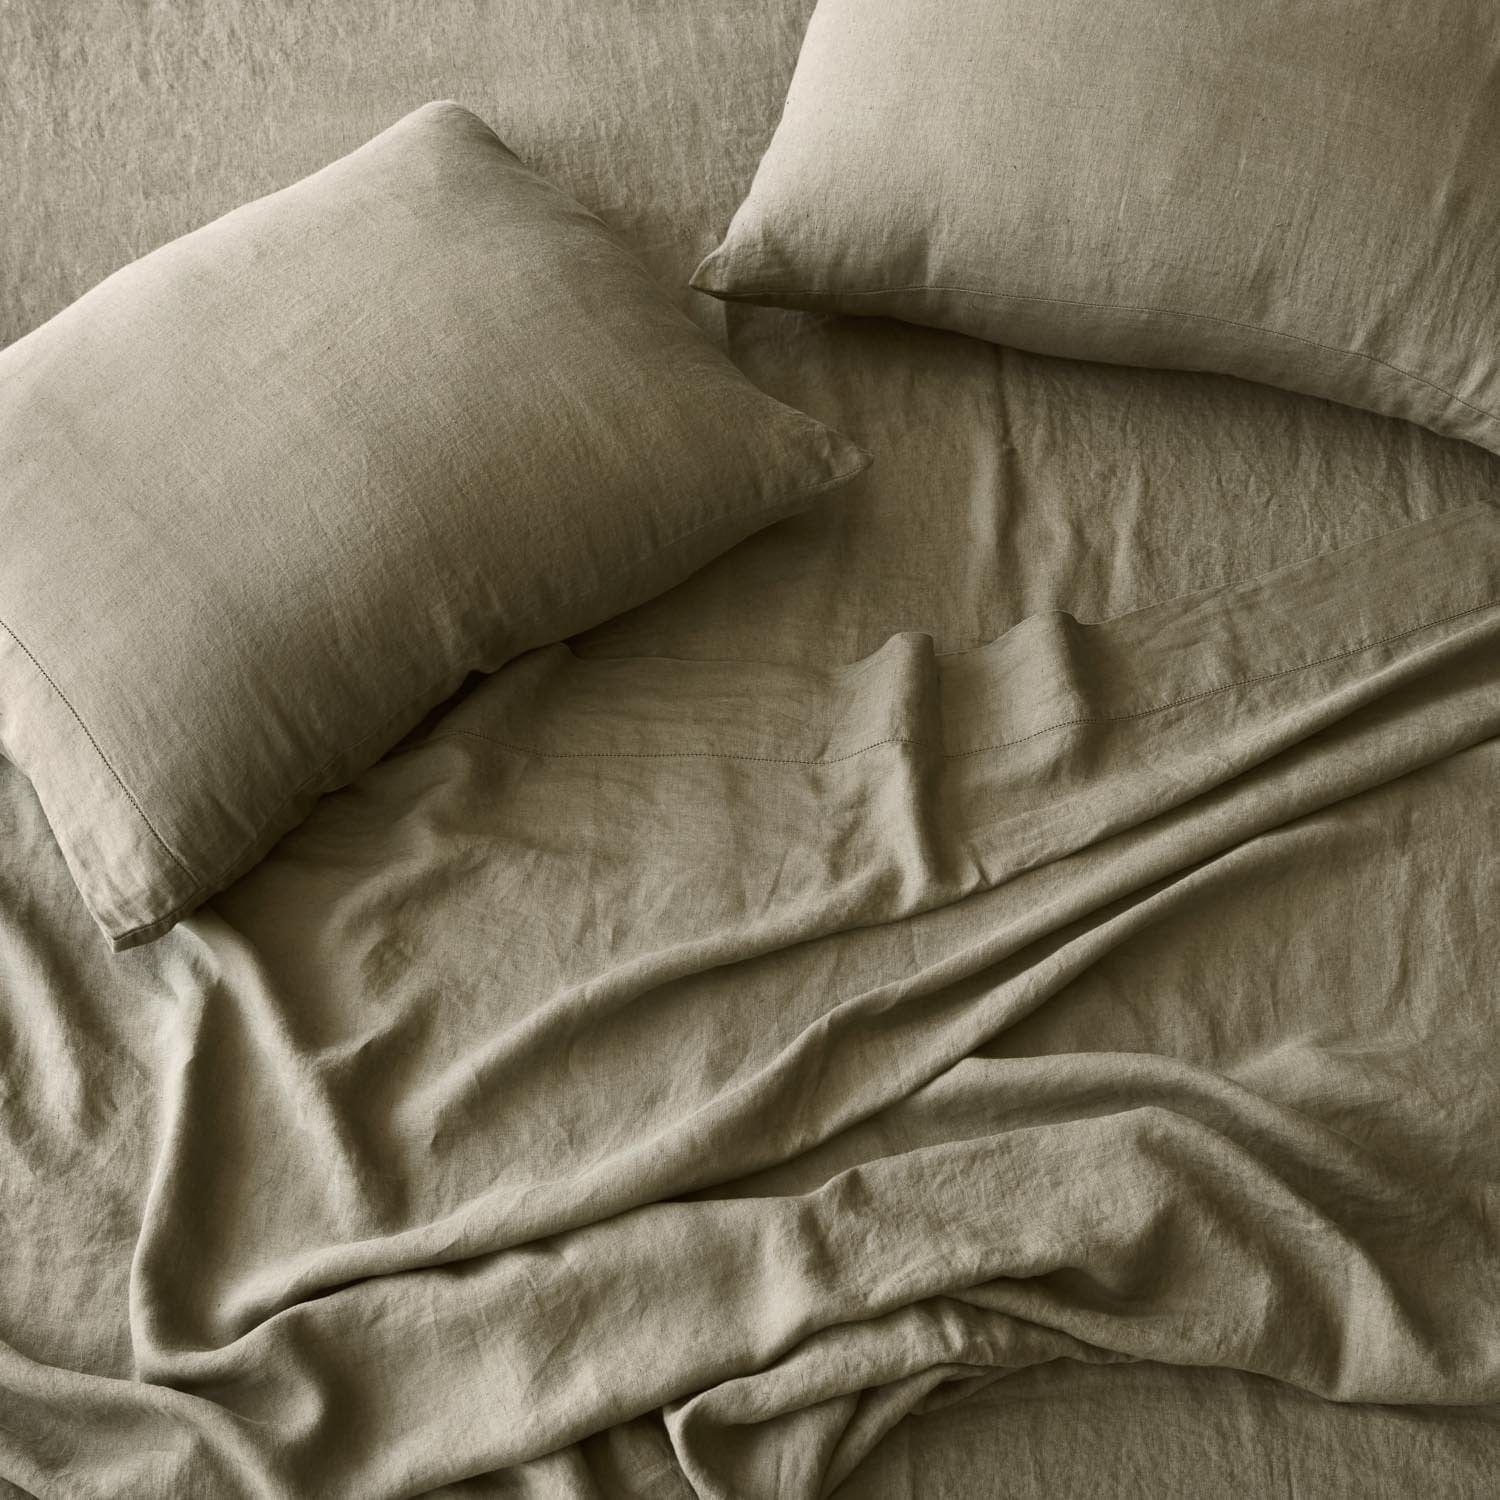 Stonewashed Linen Sheet Set Includes Pillowcases Top Fitted Sheet The Citizenry